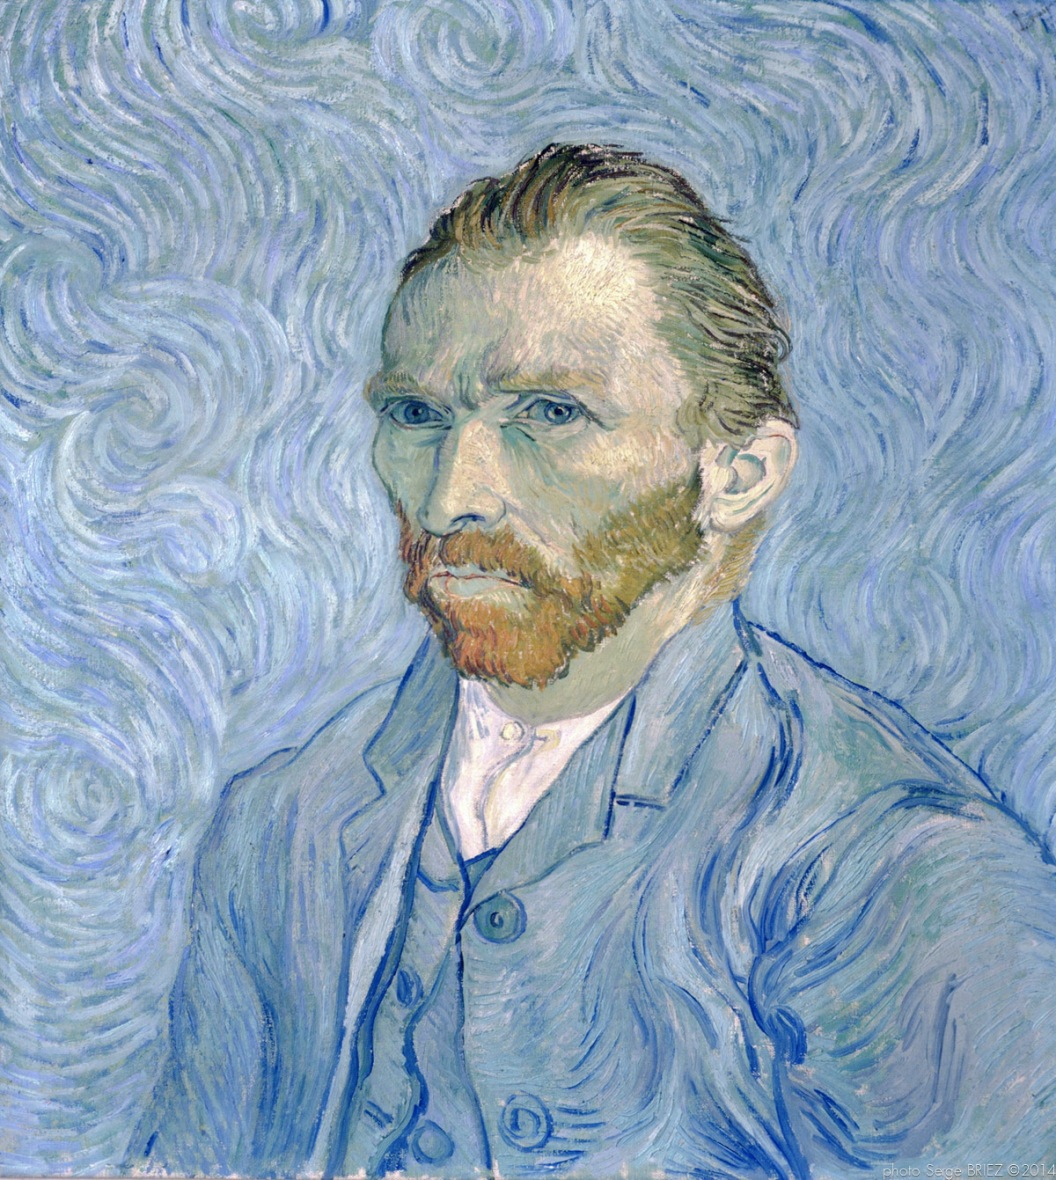 Self-portrait, Portrait of the artist, 1889 , Van gogh's painting photographed by Serge Briez, ©2014 Cap médiations